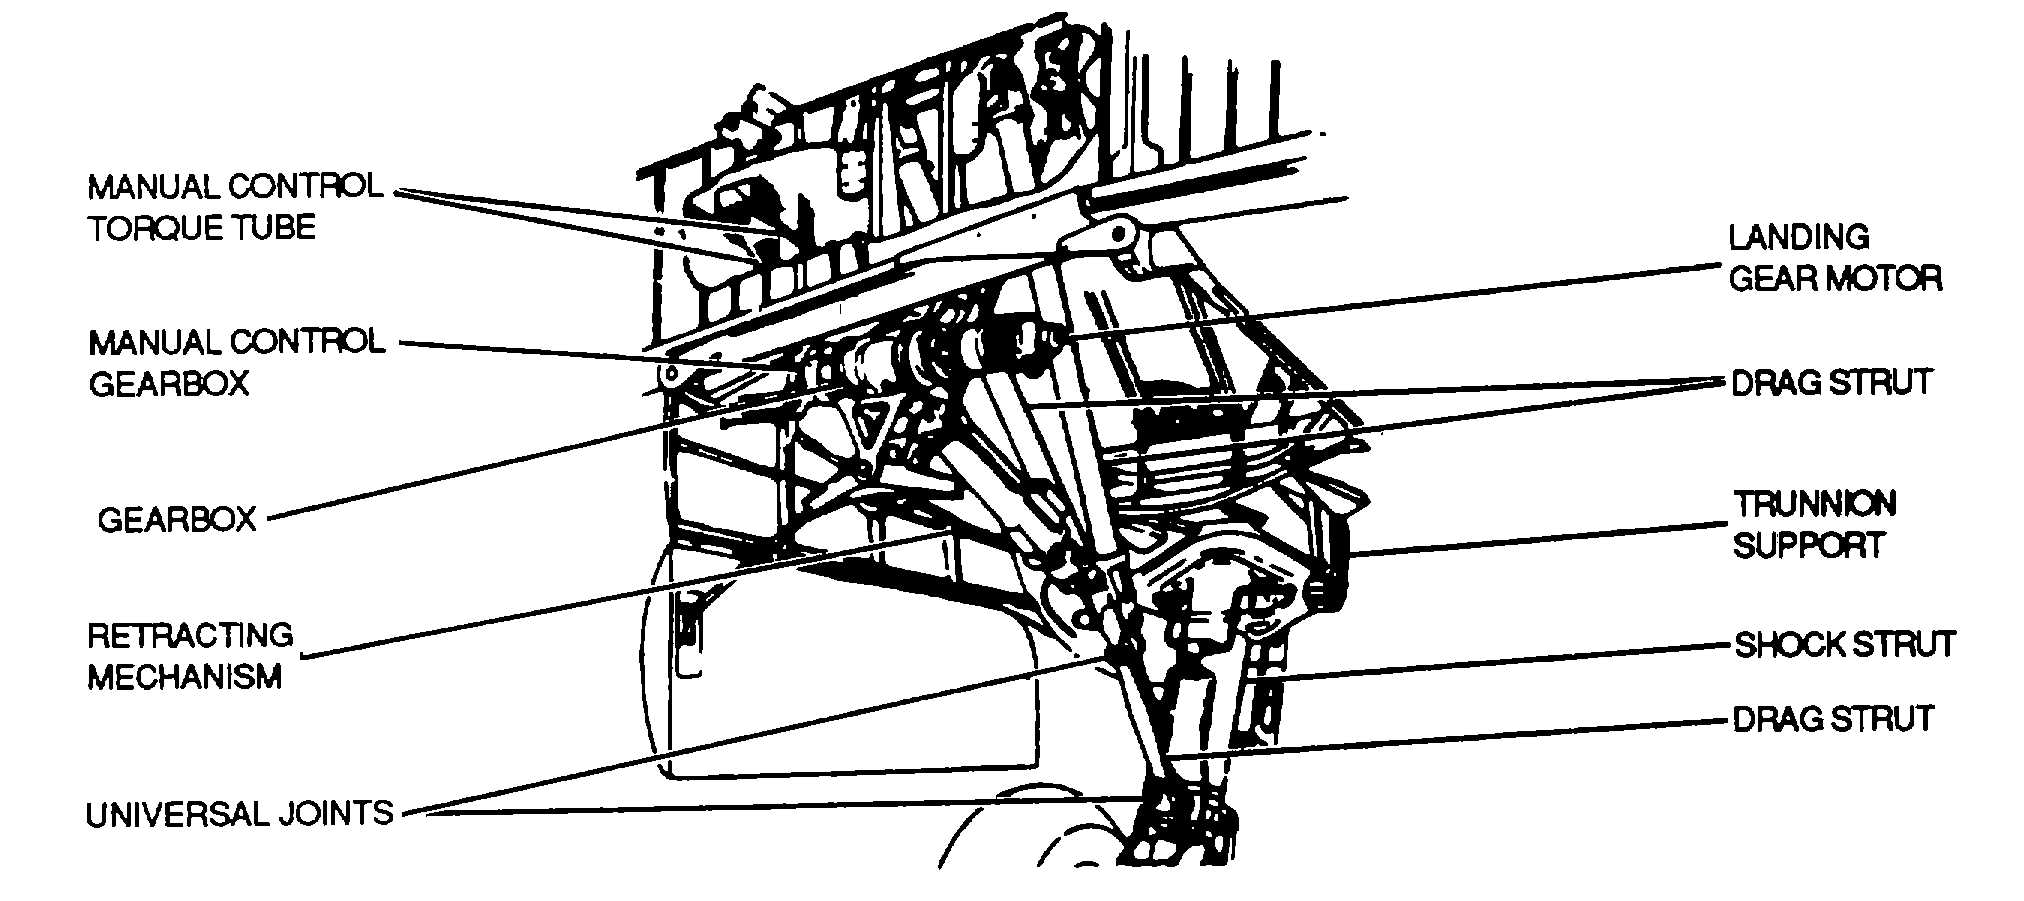 Figure 9-1. Electric Retraction System